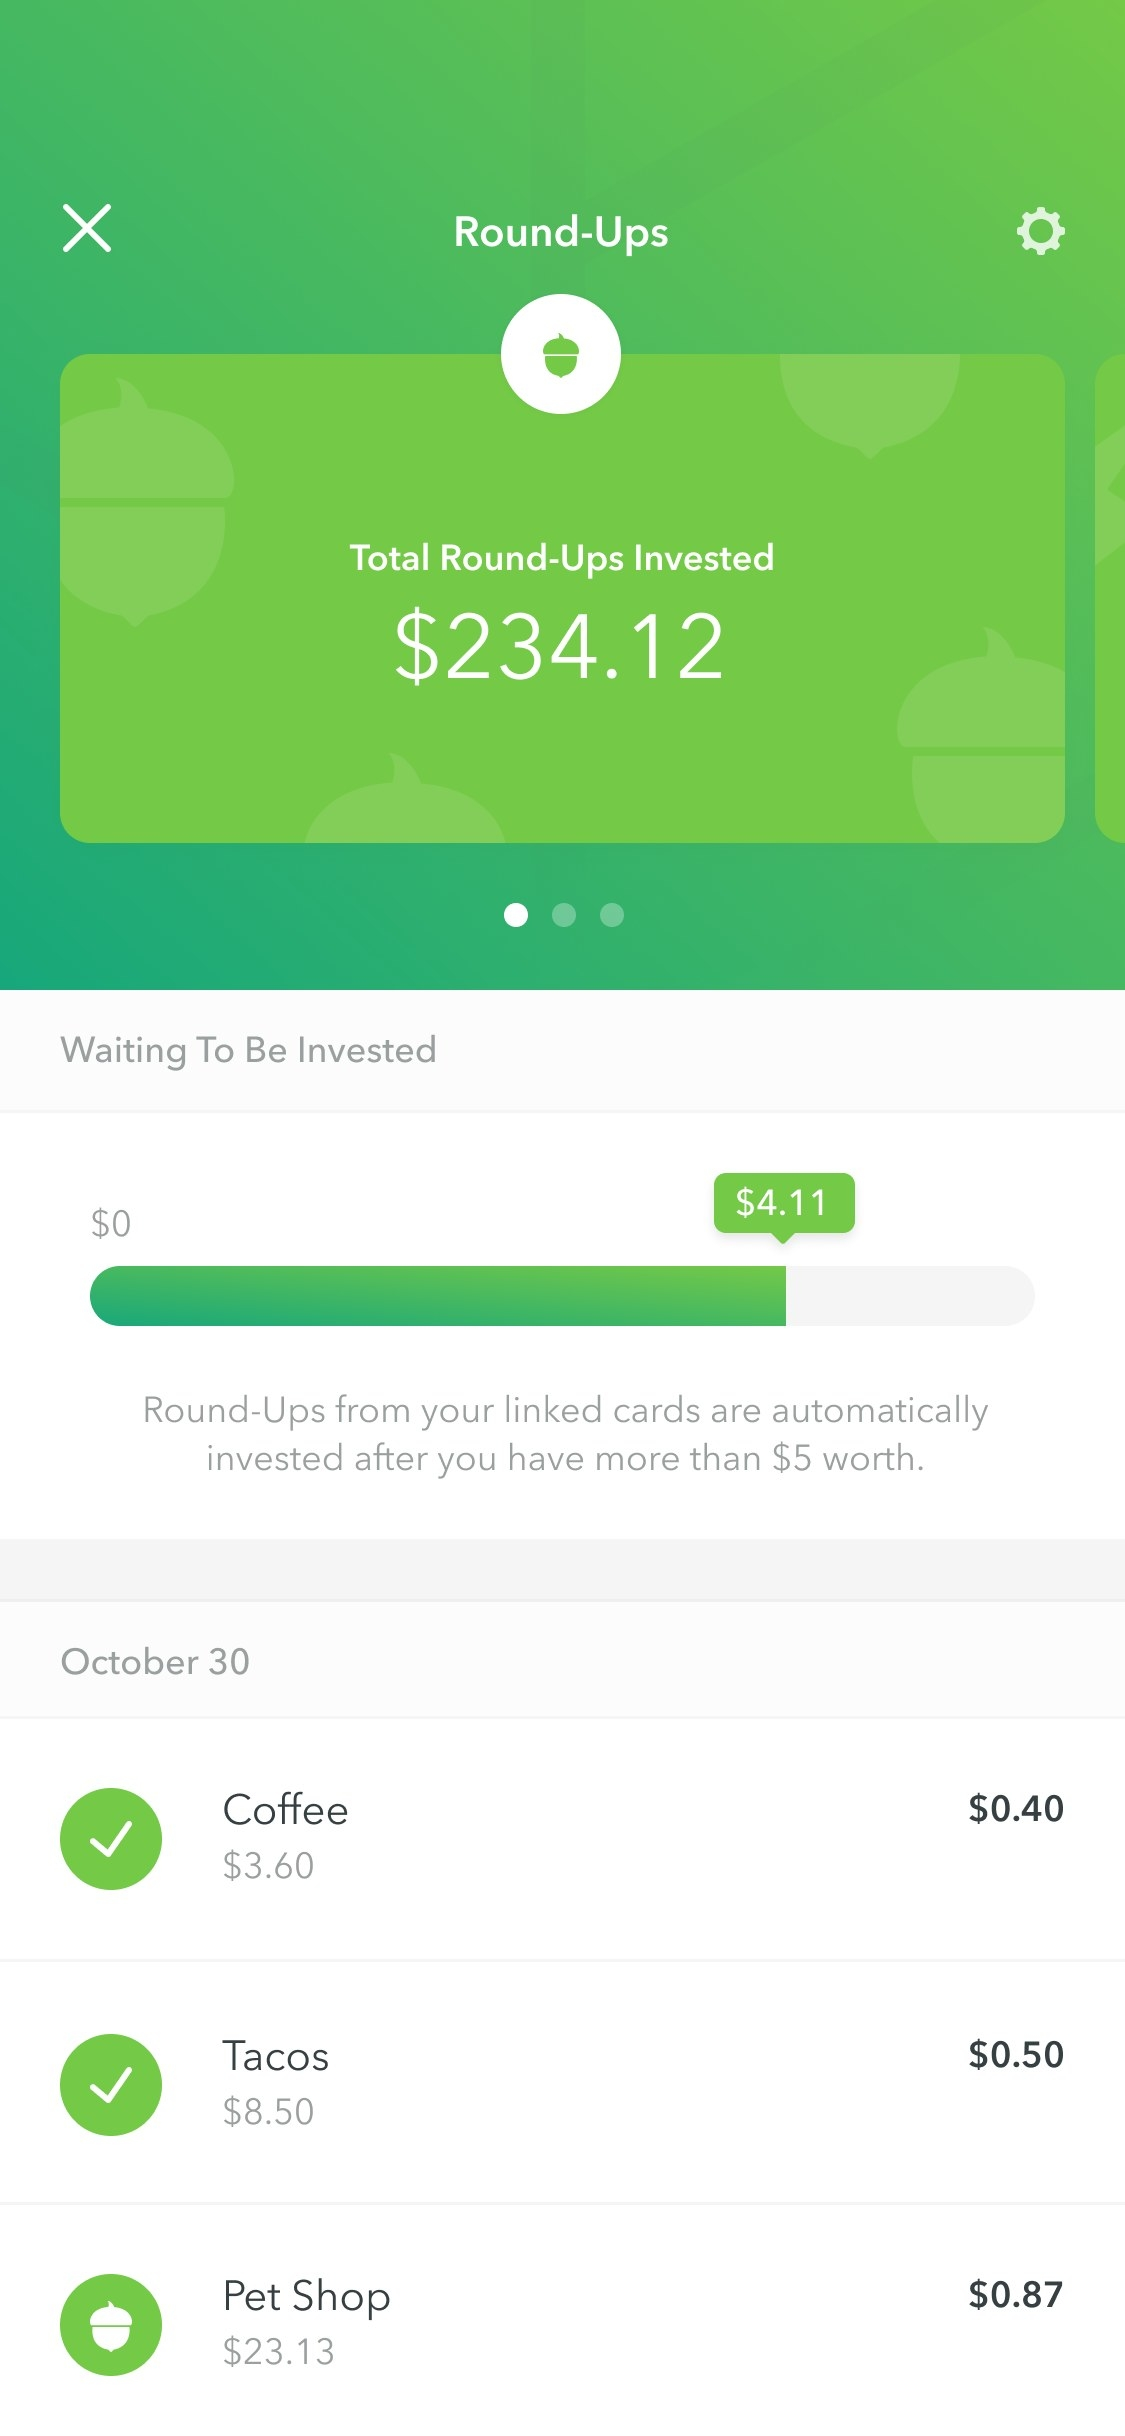 Acorns screenshot showing how you can easily round up spare change on your purchases to invest